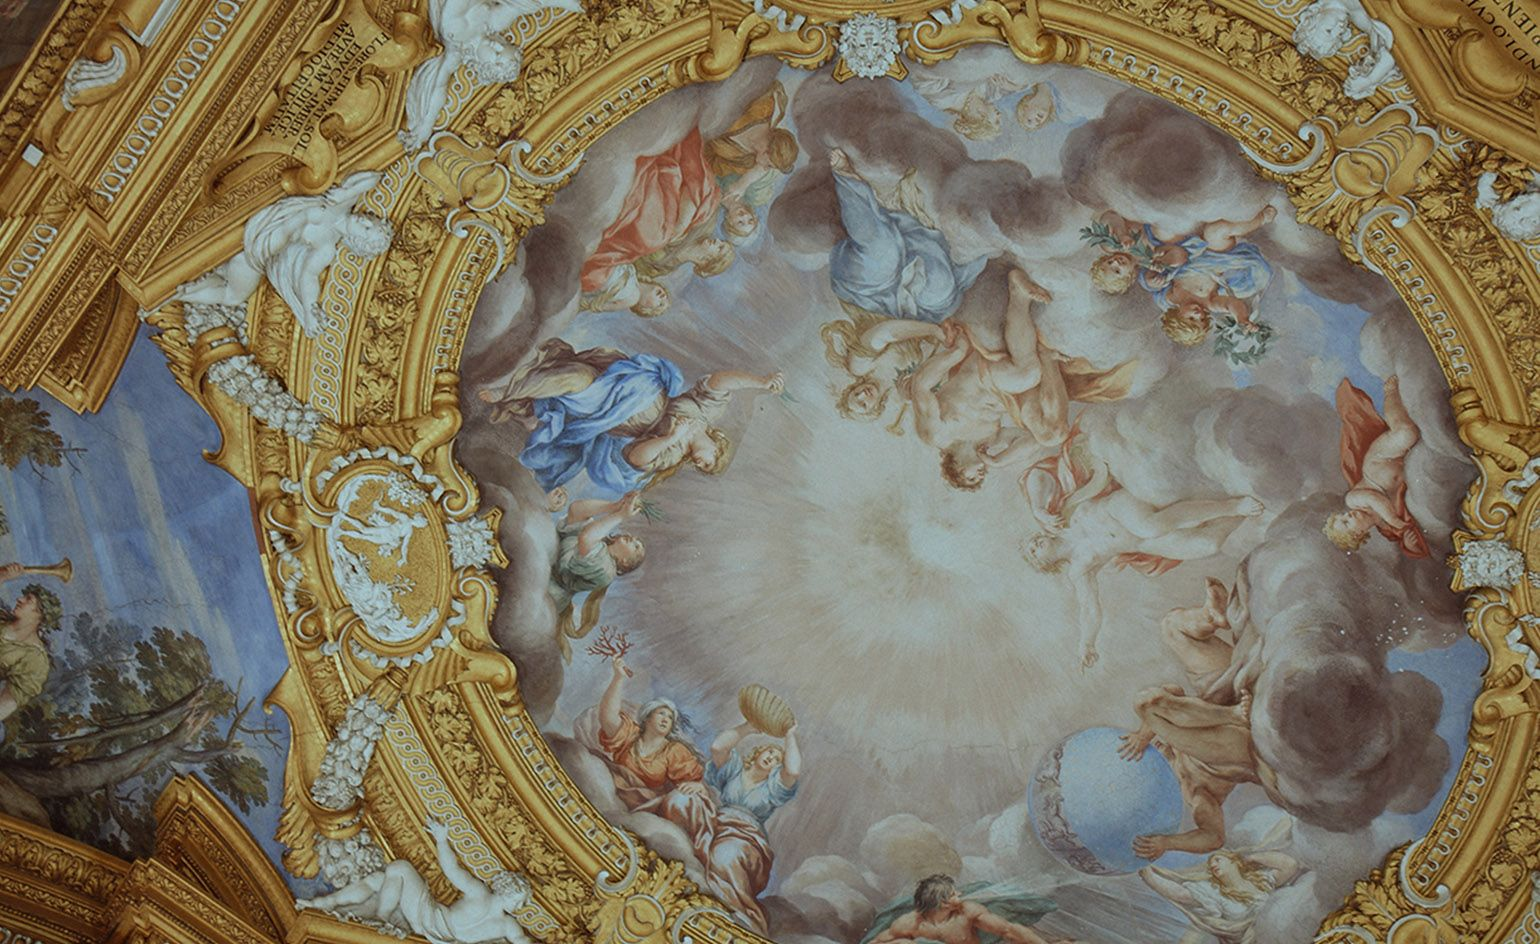 Renaissance Aesthetic Wallpapers Top Free Renaissance Aesthetic Backgrounds Wallpaperaccess